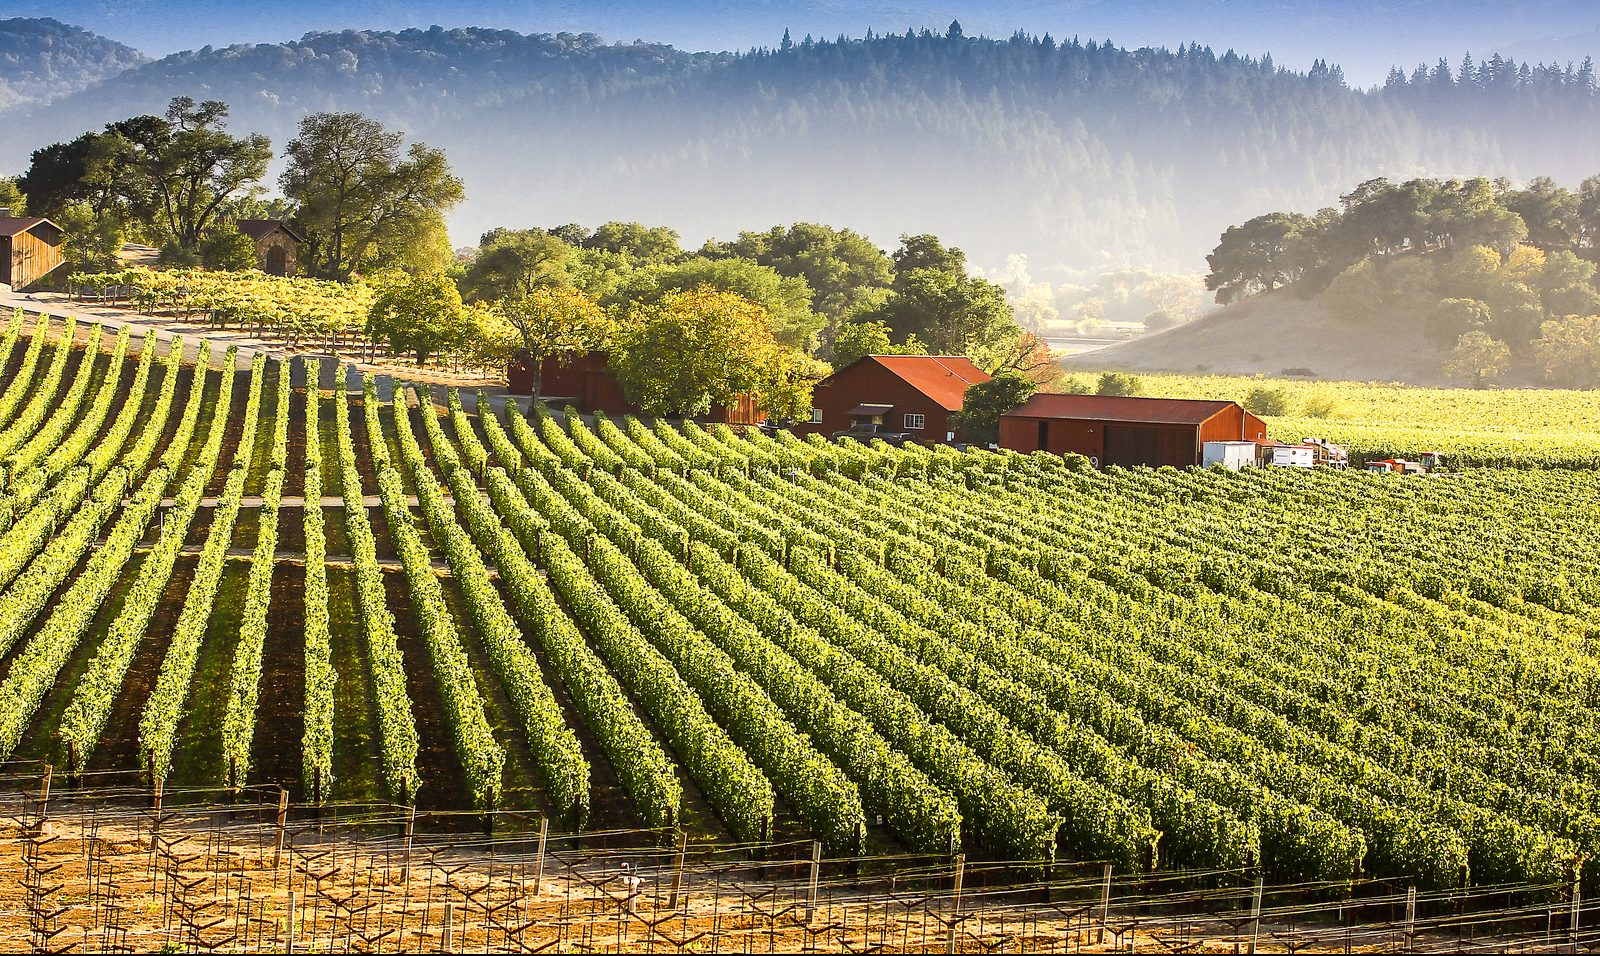 beautiful napa valley farm location for a getaway